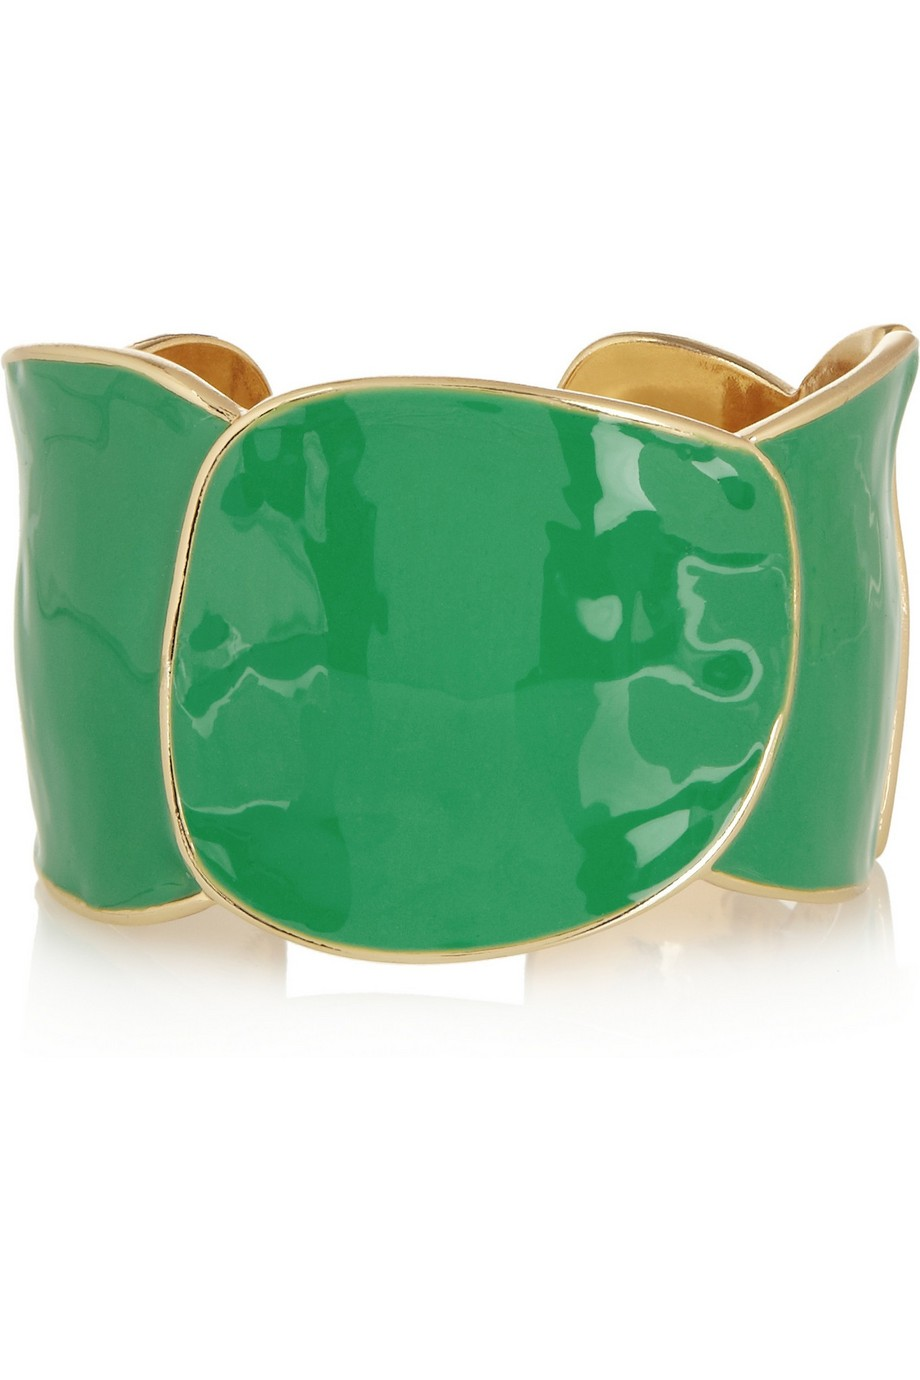 Enameled gold-plated cuff